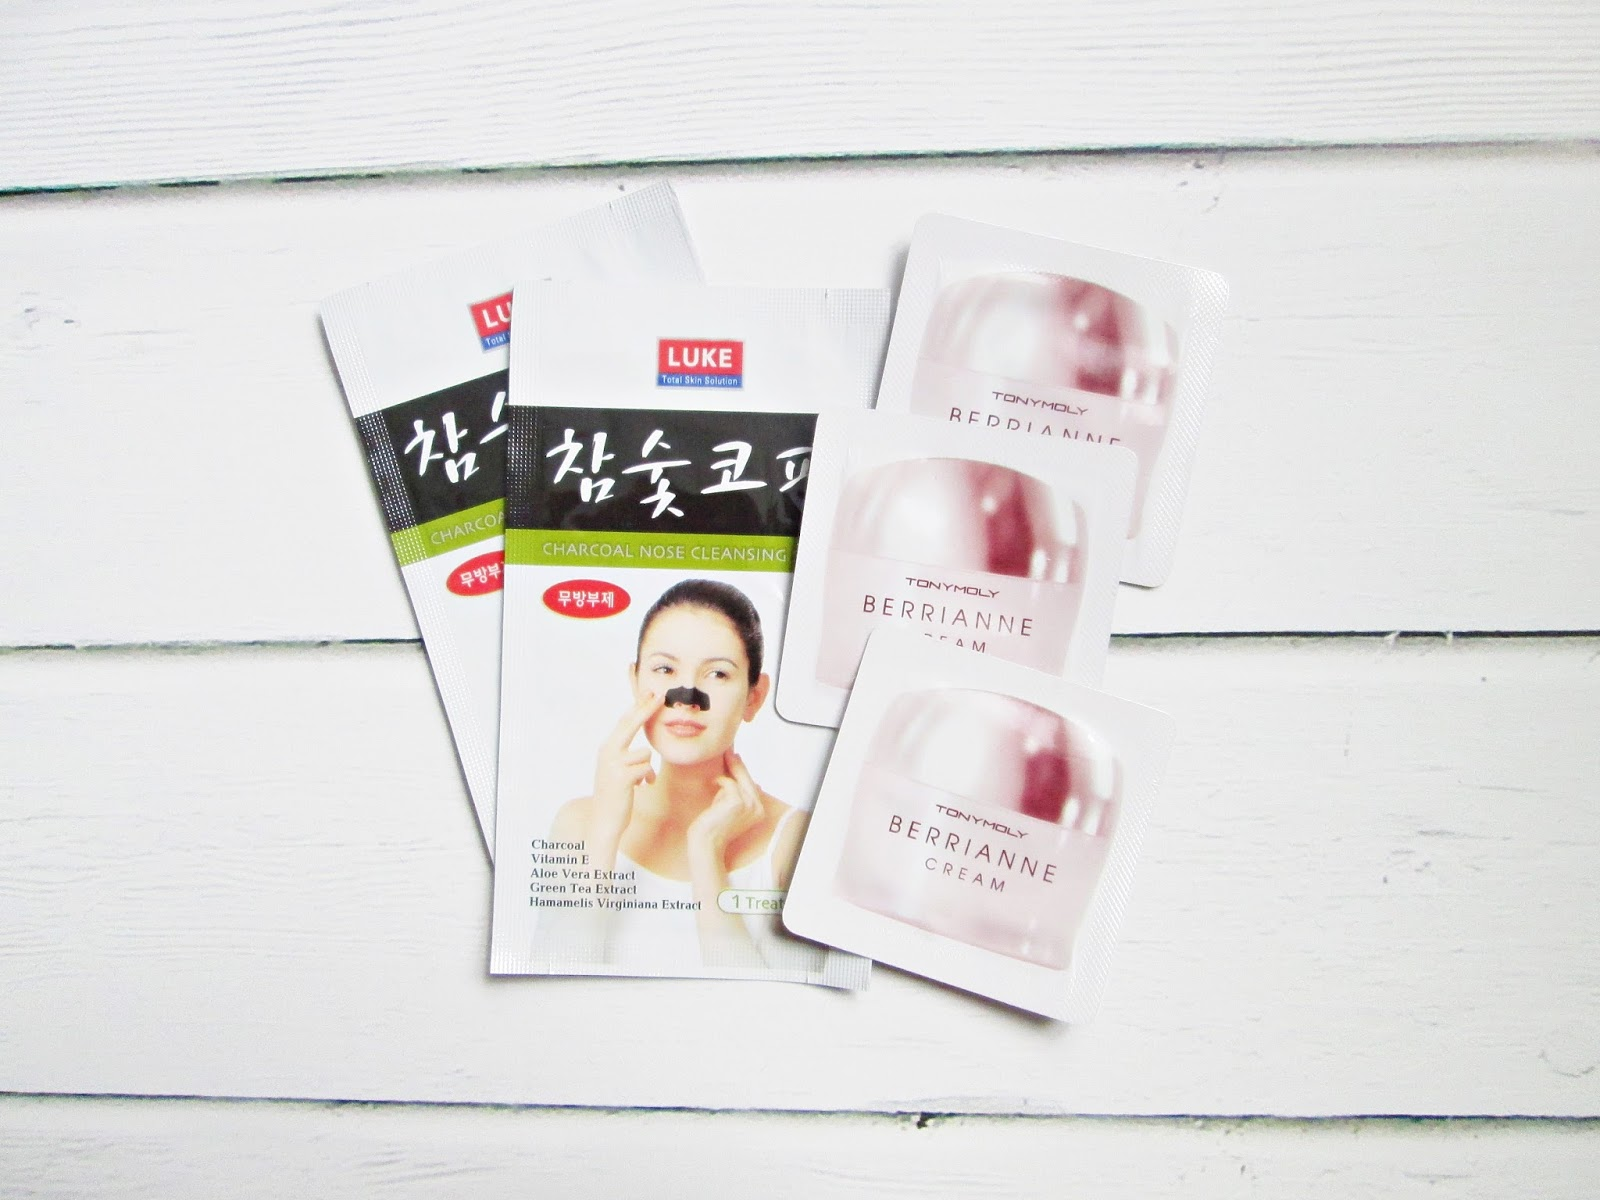 płatki na wągry Luke Nose Charcoal Cleasing Strips, krem Tony Moly Berrianne Cream